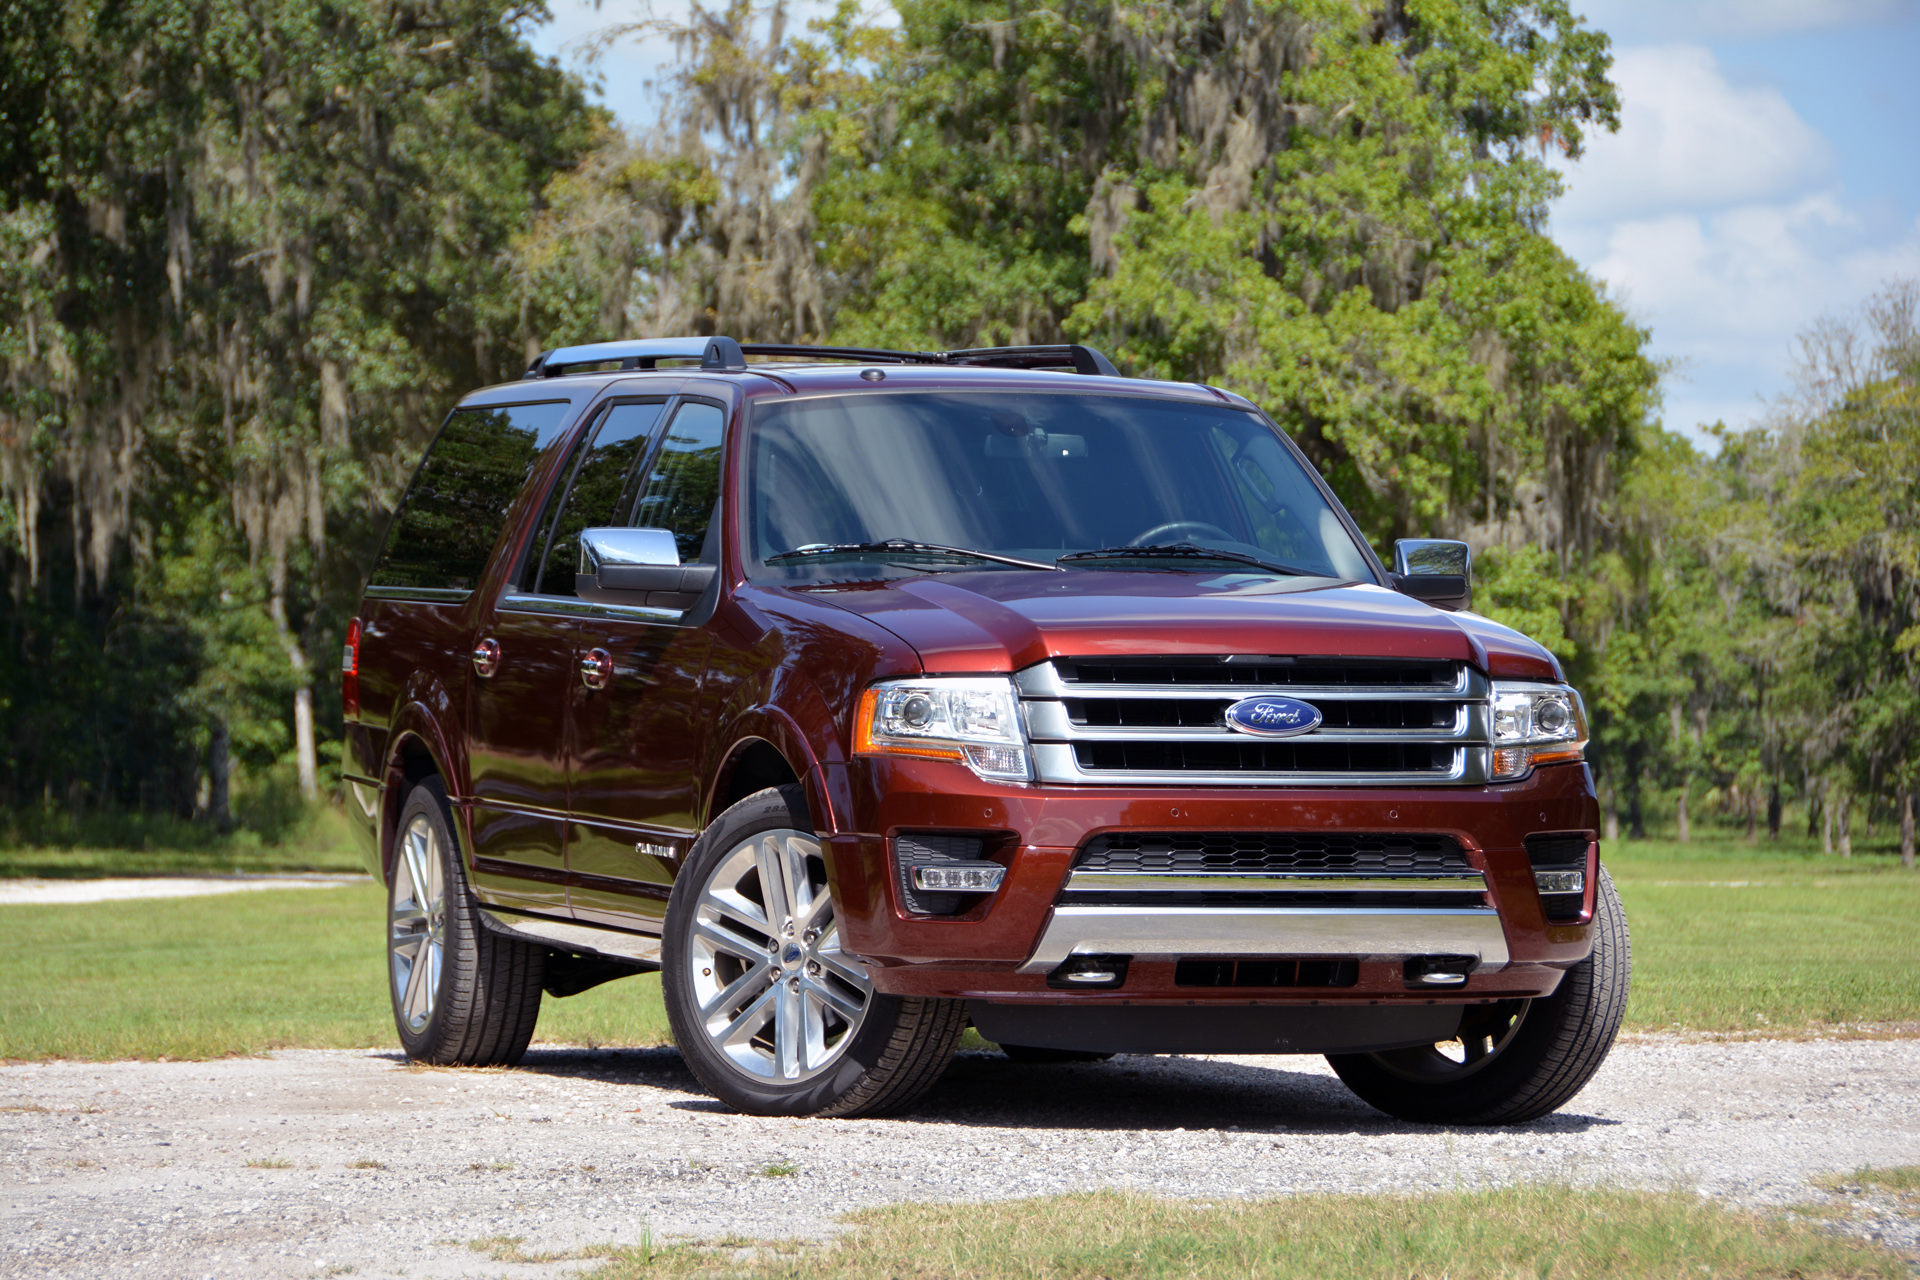 2015 Ford Expedition El Platinum Driven Pictures Photos